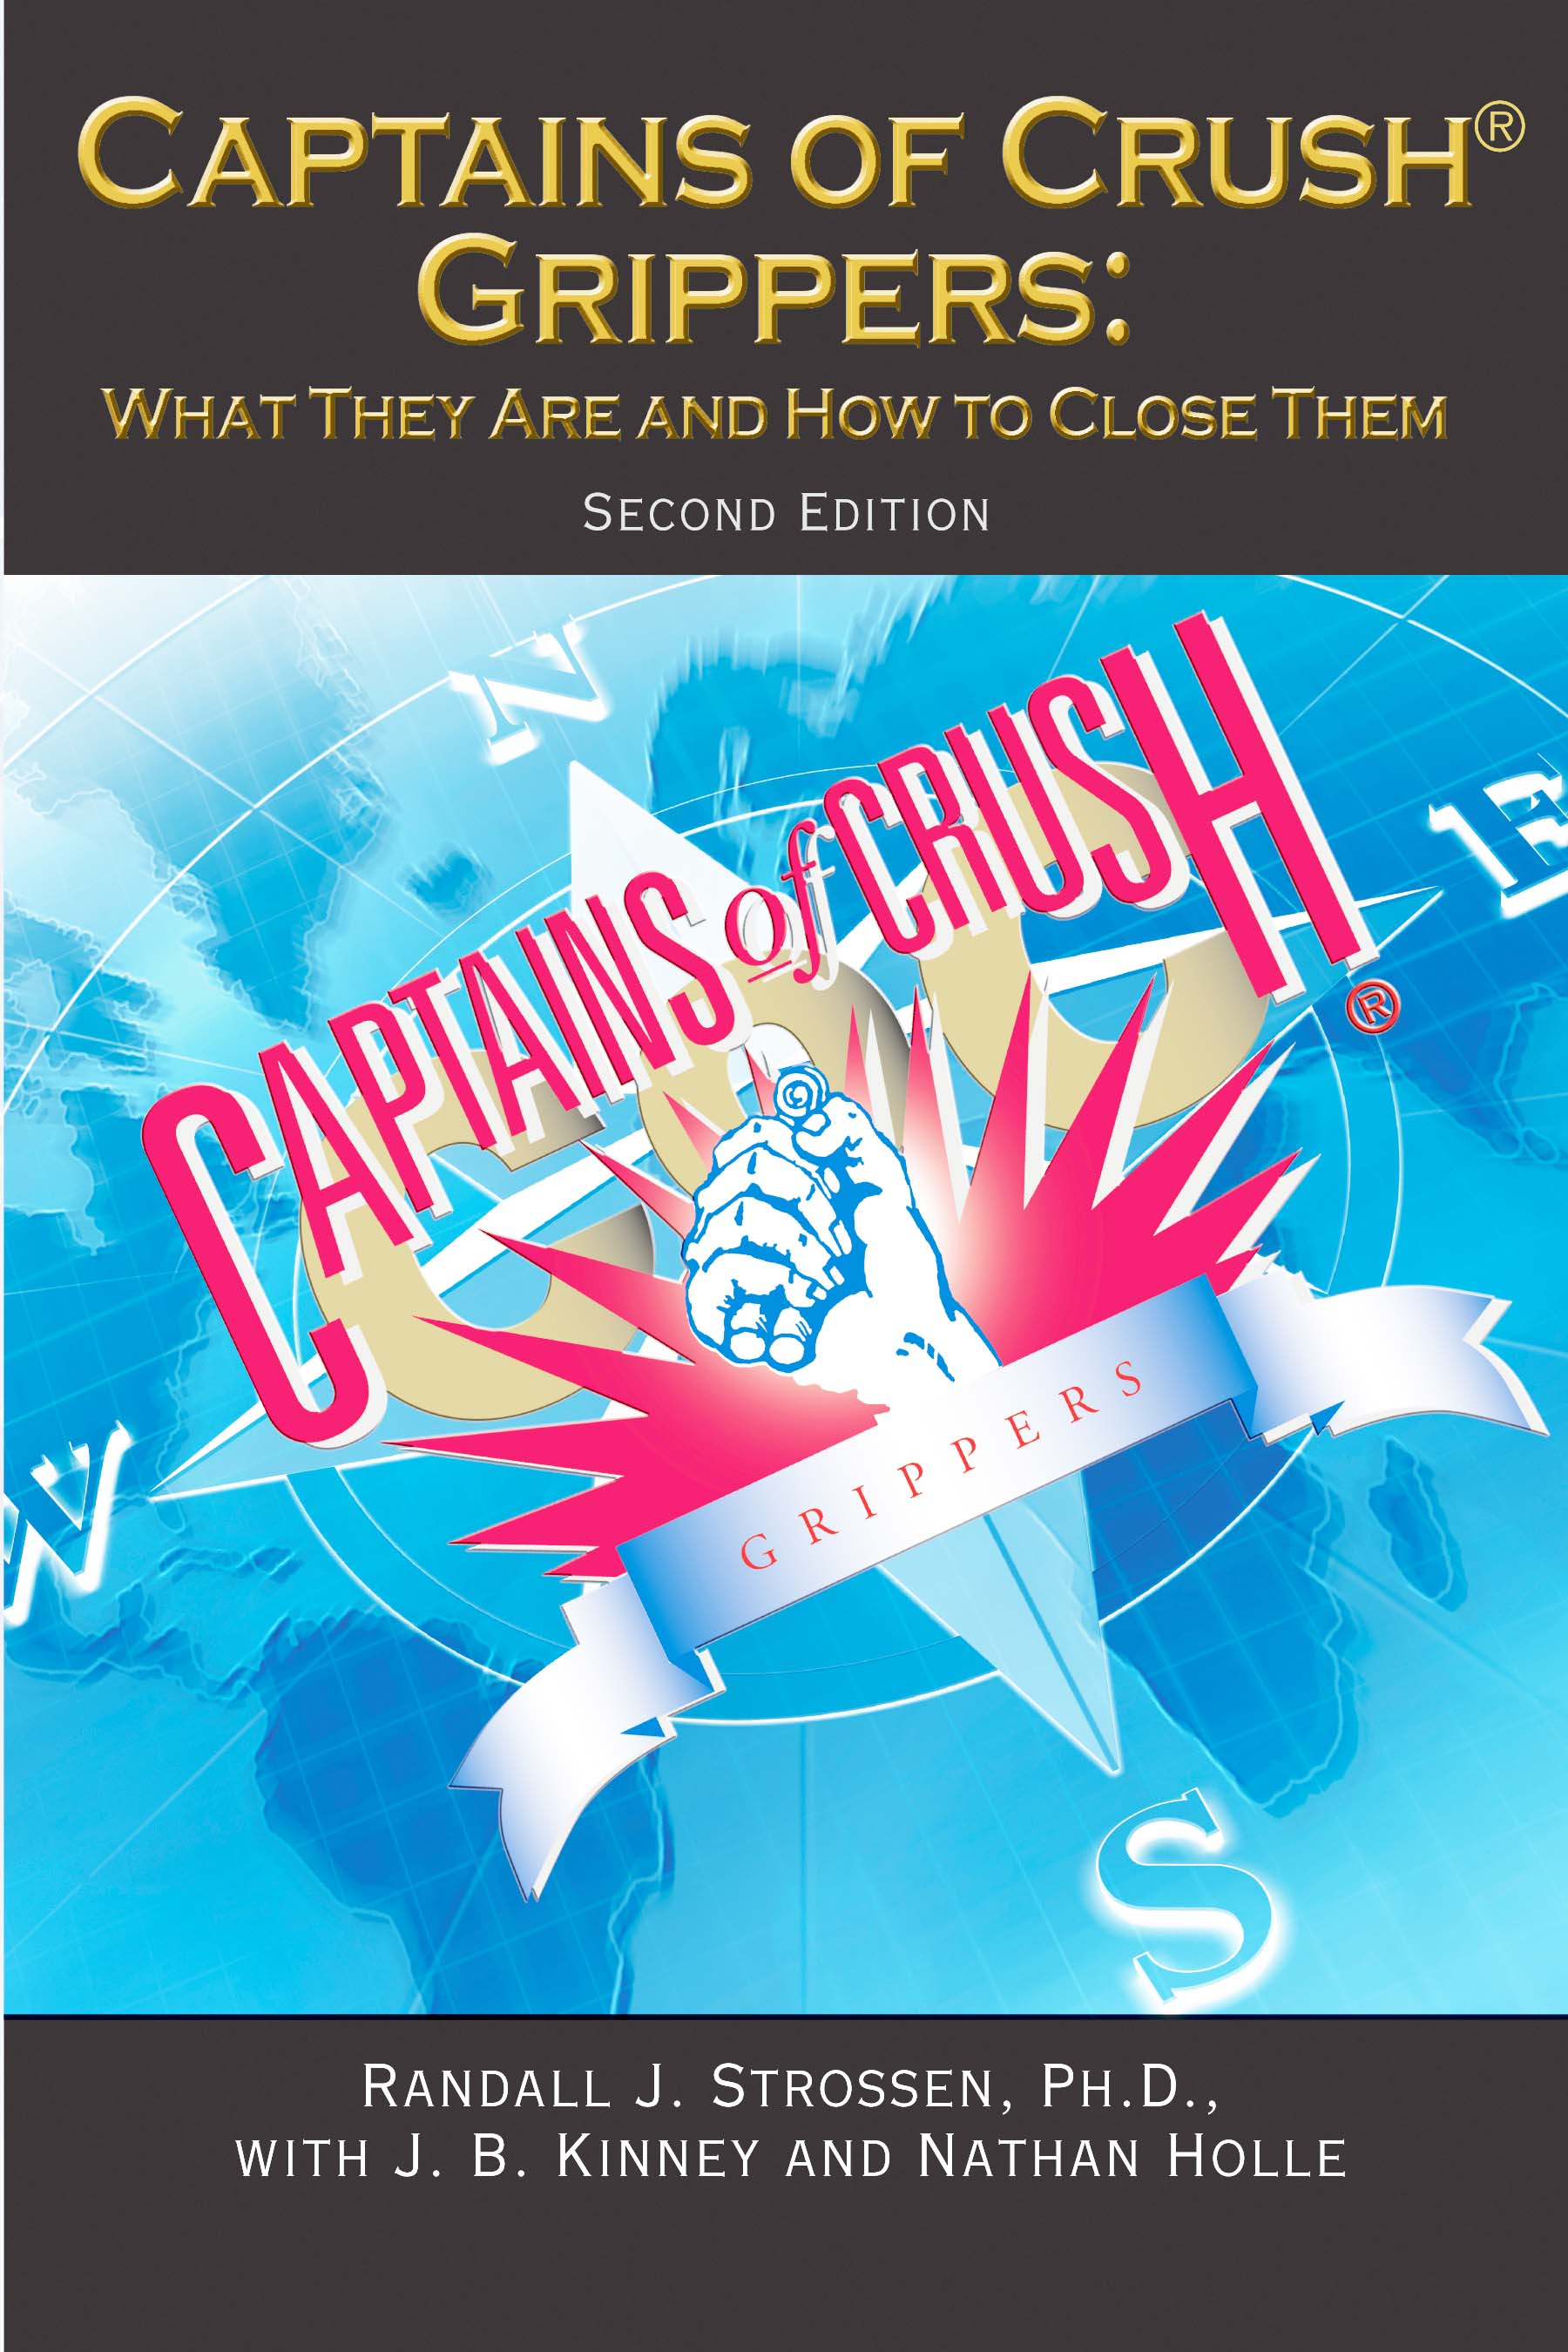 Captains of Crush Grippers:  What They Are and How to Close Them by Randall J. Strossen, Ph.D., with Joe Kinney and Nathan Holle